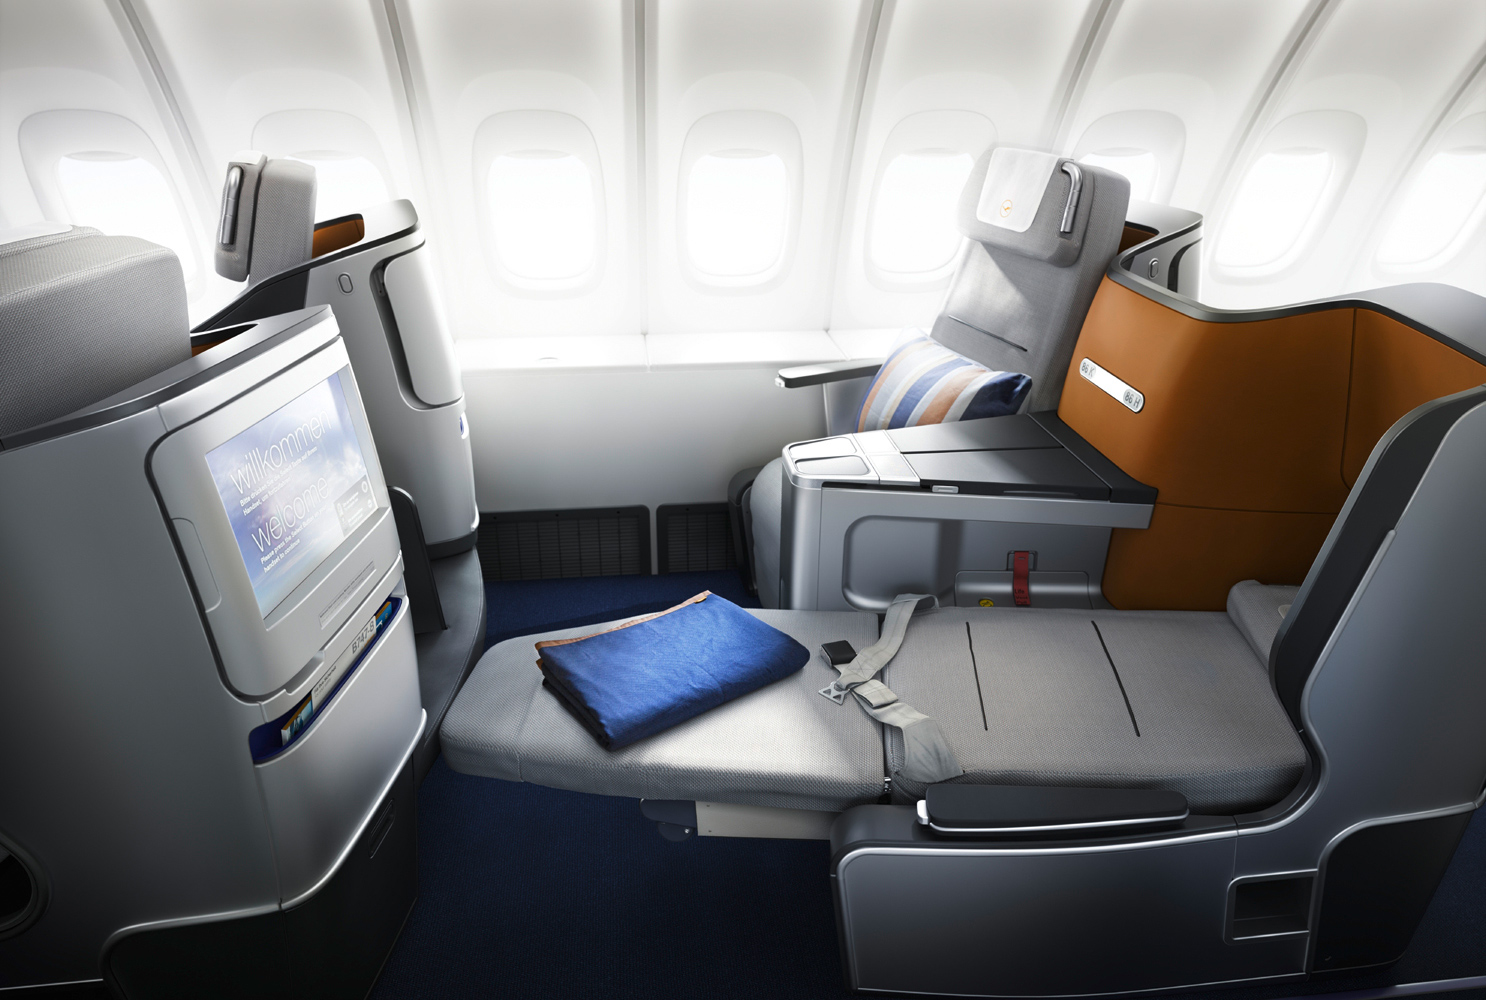 Günstig in der business Class nach New York fliegen